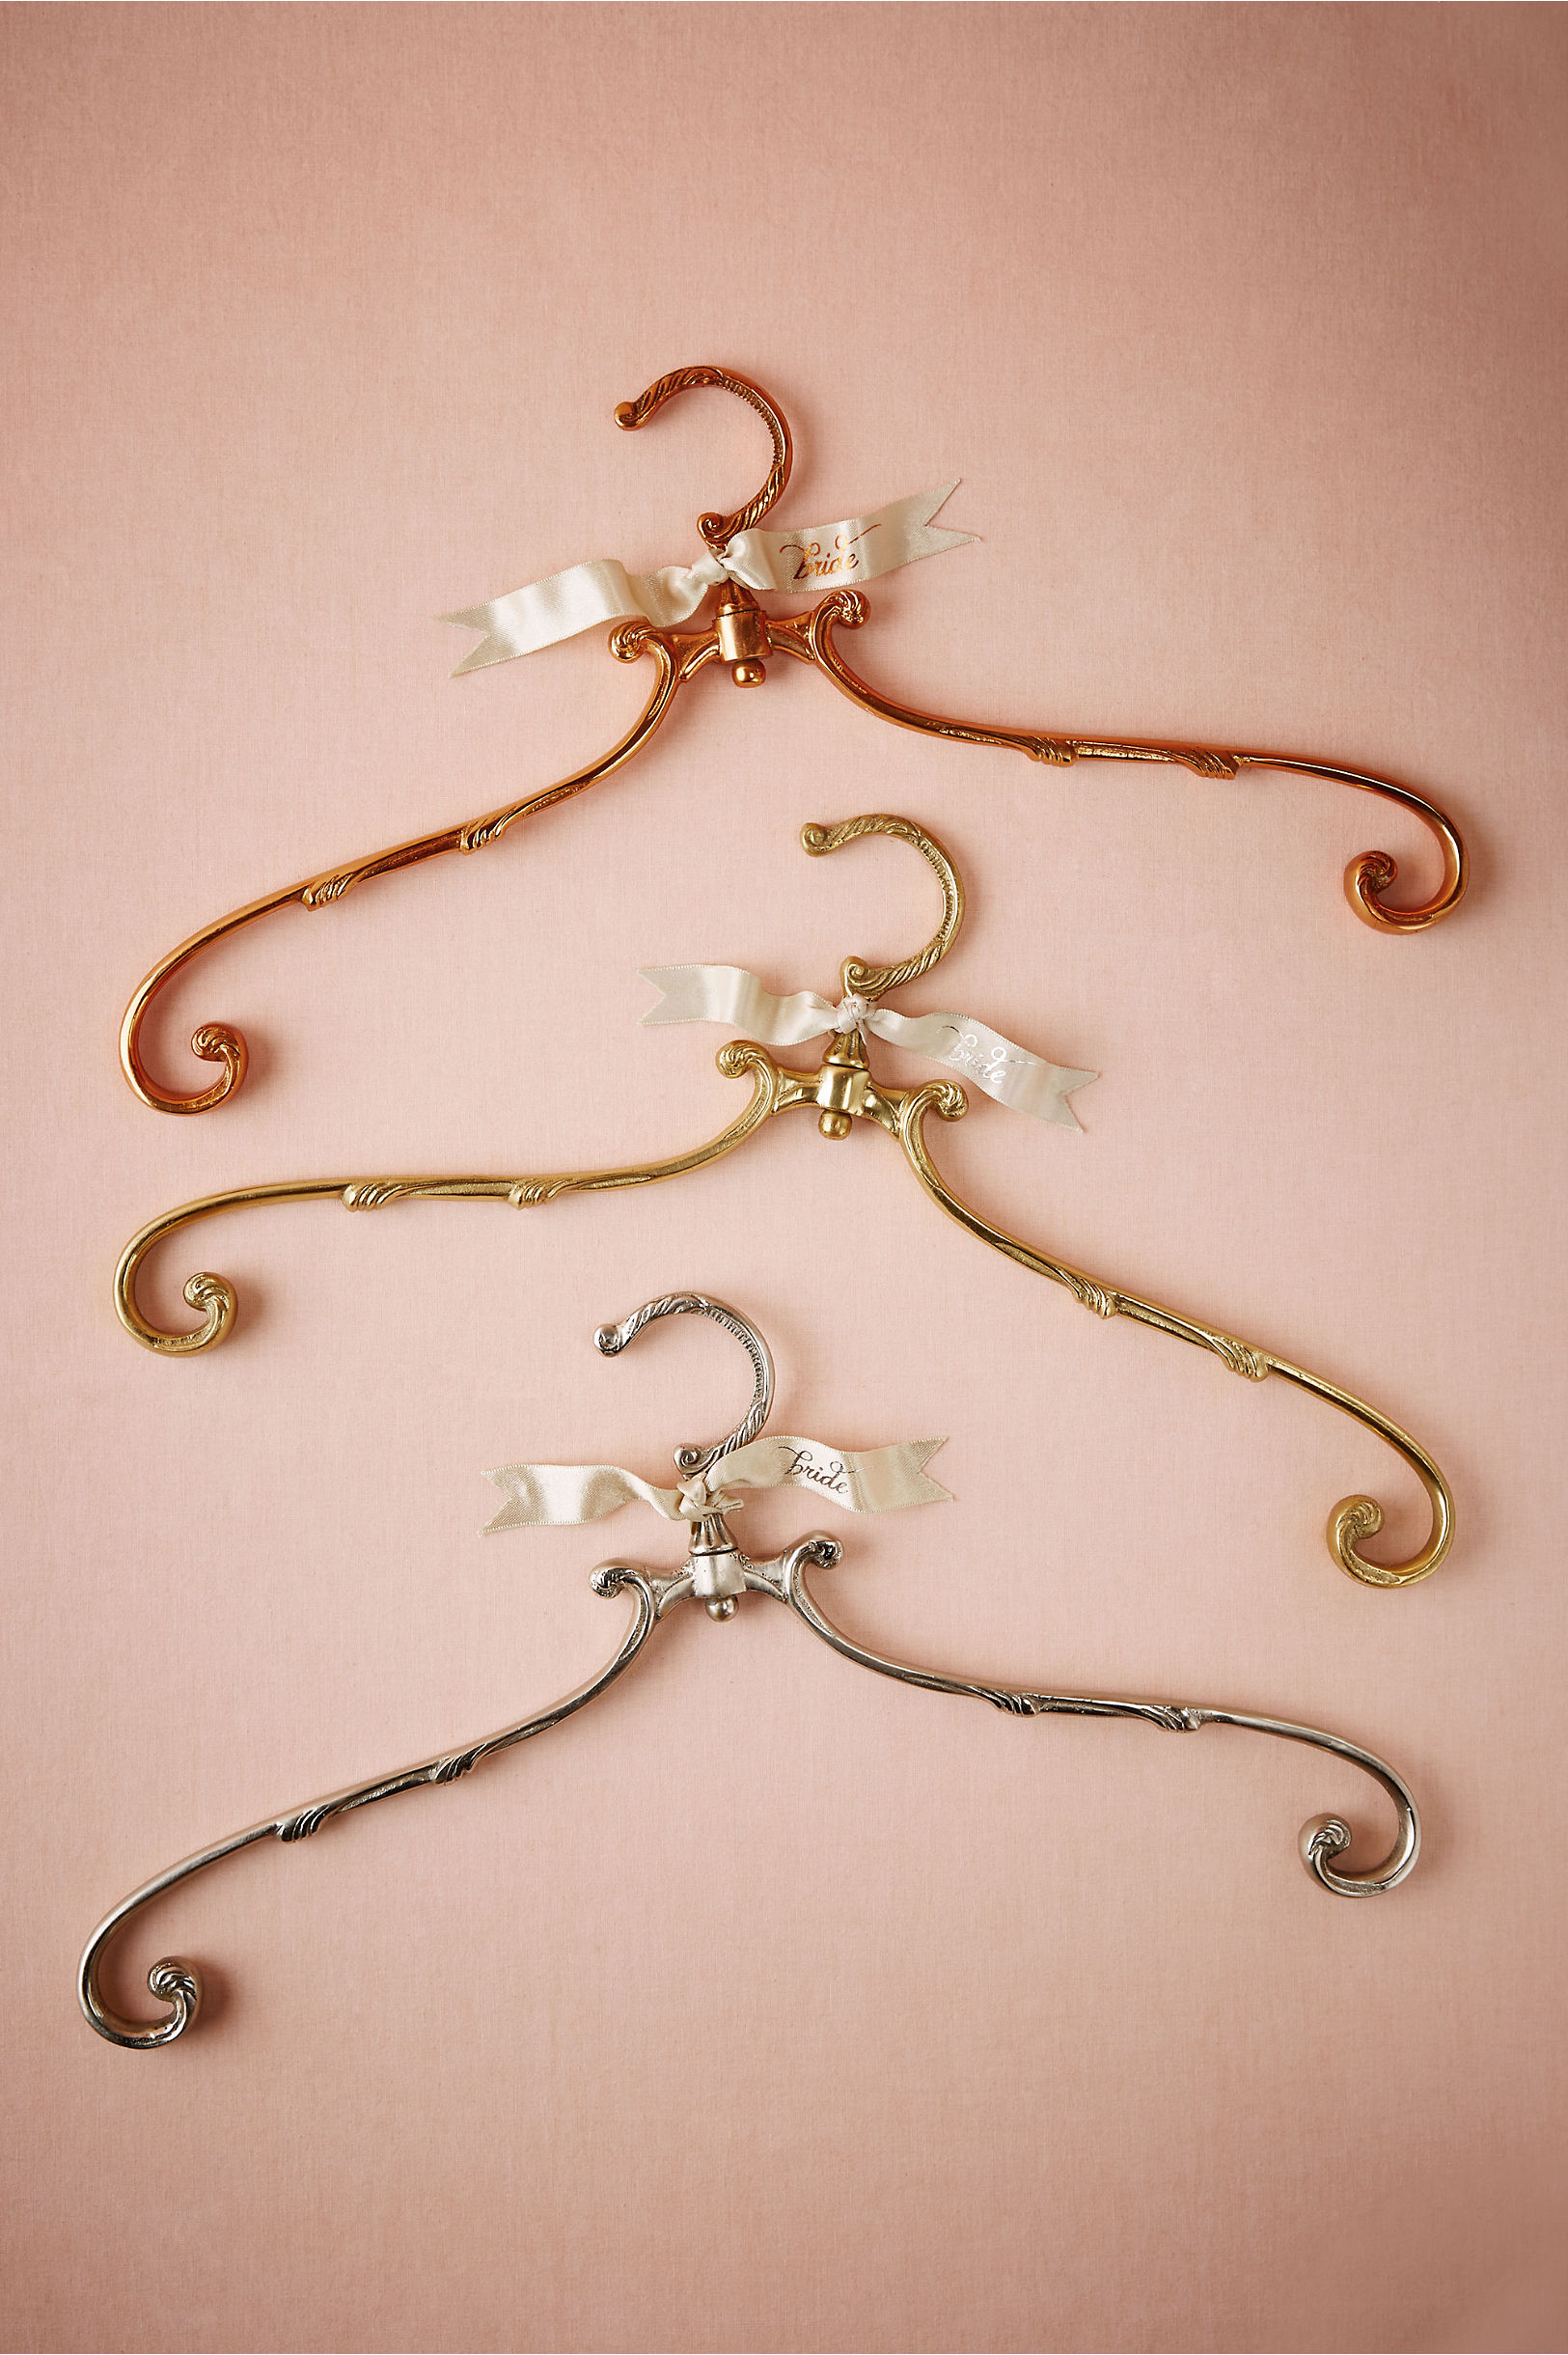 copper french decorative decor hangers a hanger market bhldn xl sale zoom product in picture